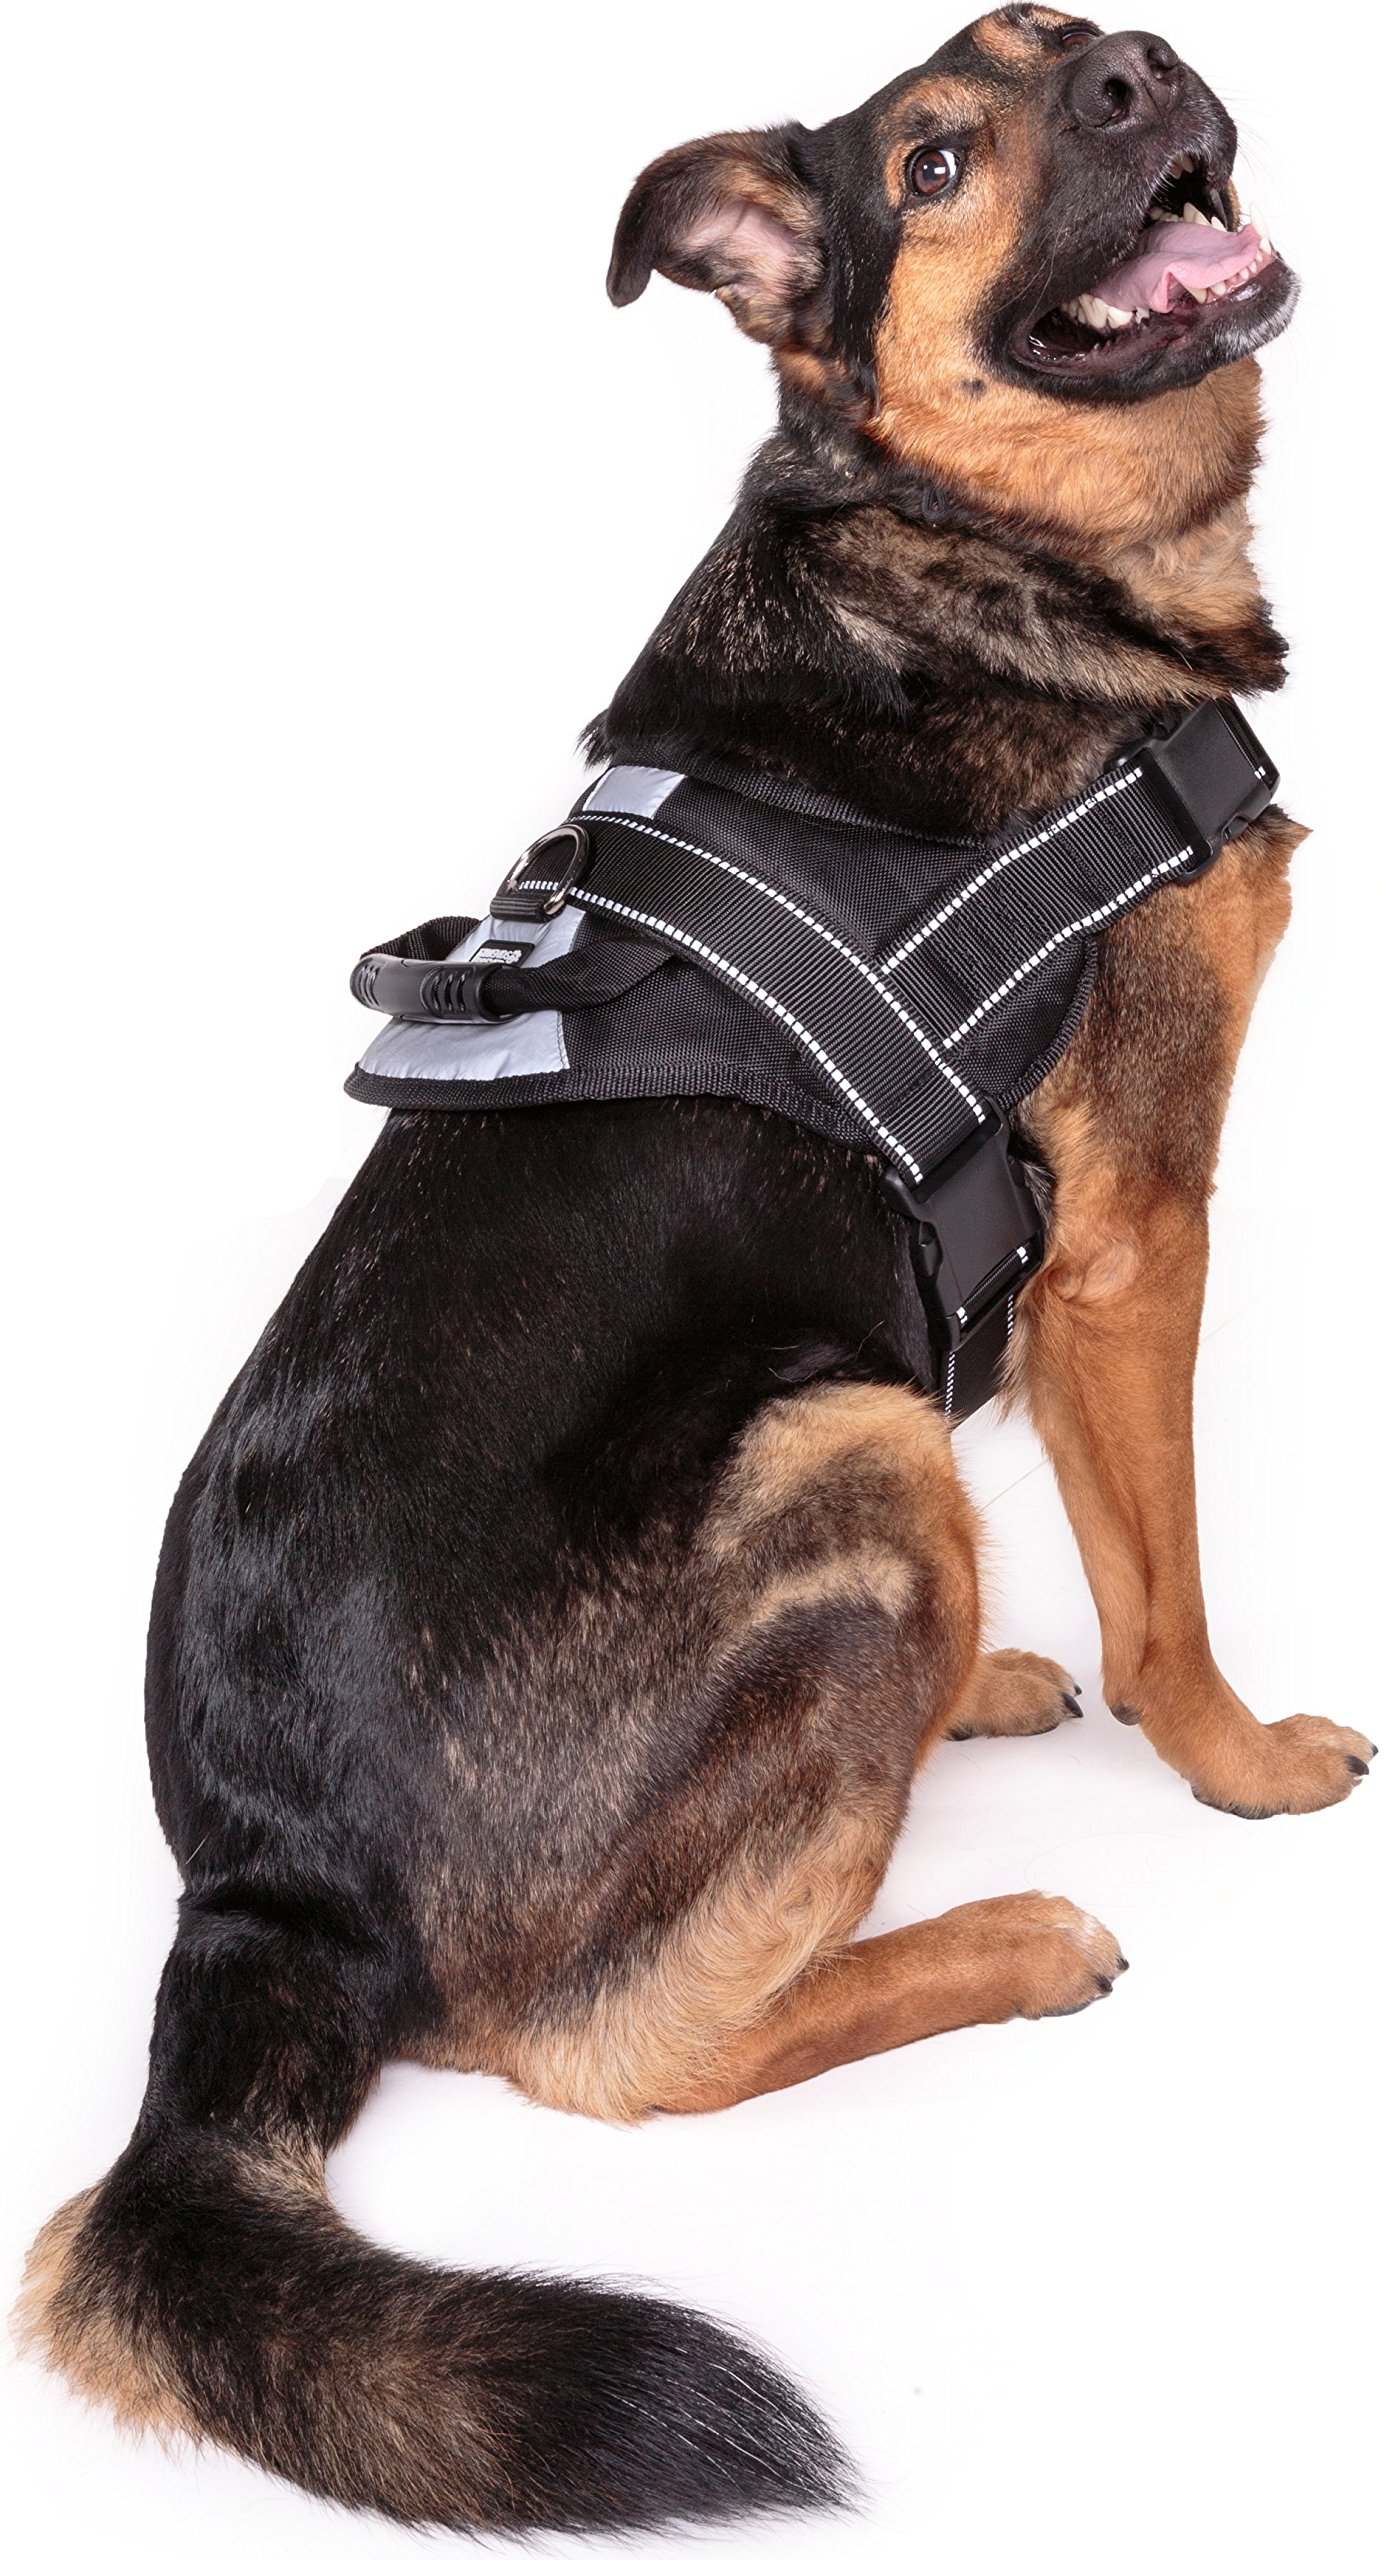 Friends Forever No Pull Dog Harness Large Breed - Training Harnesses for Large Dogs, Black Dog Vest with Handle & 3M Reflective Material for Extra Control and Safety L Size